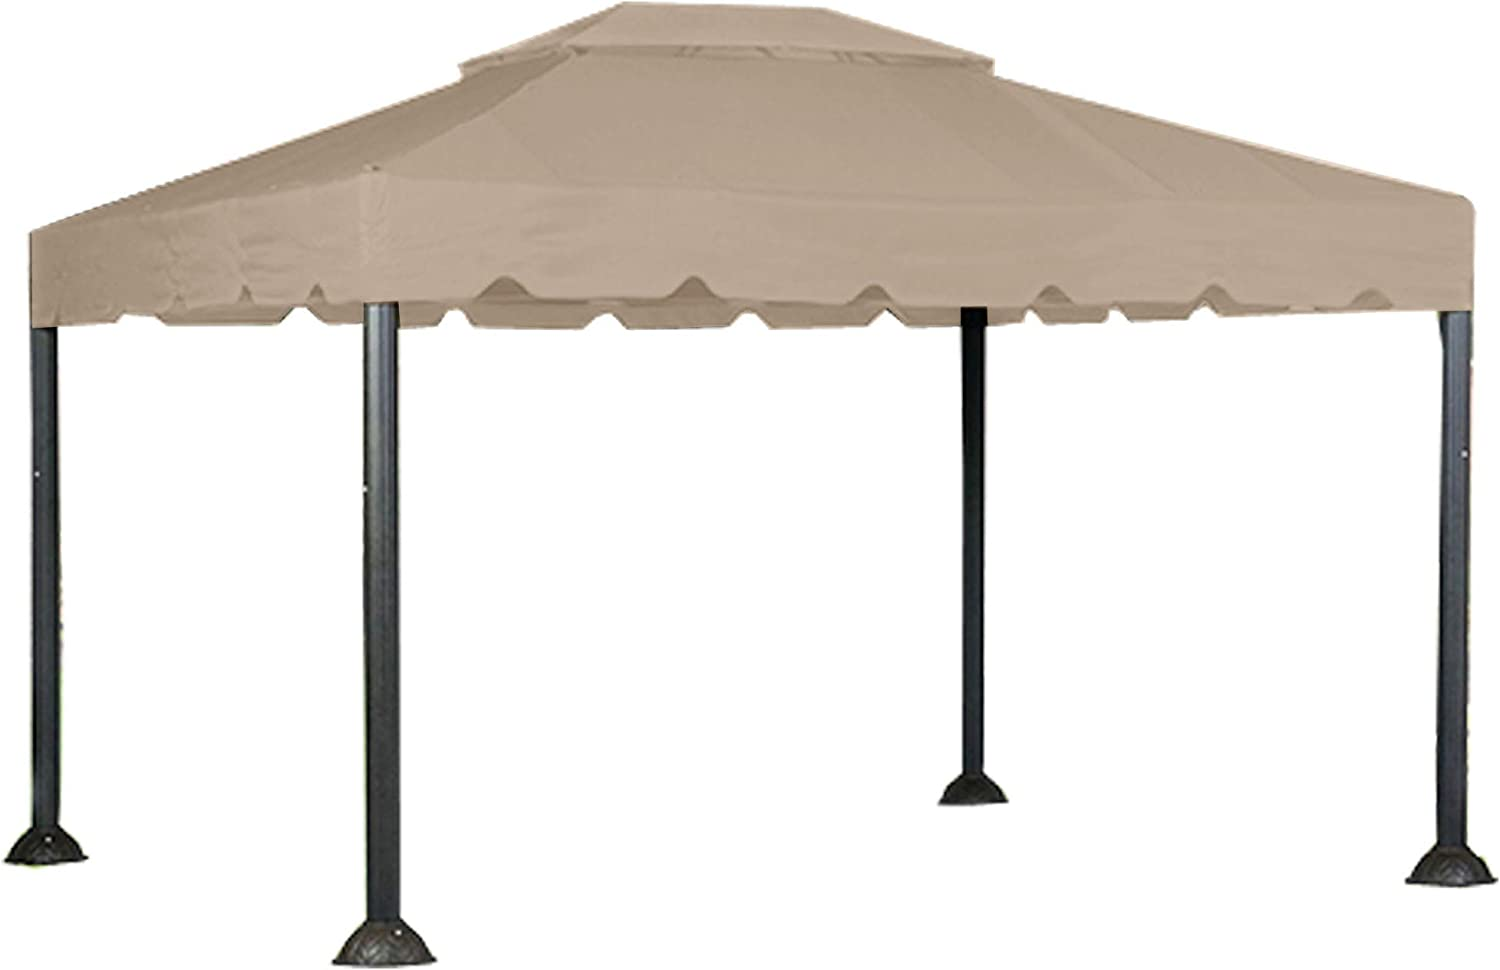 10 X 12 Garden House Gazebo Replacement Canopy Top Cover and Netting - RipLock 350